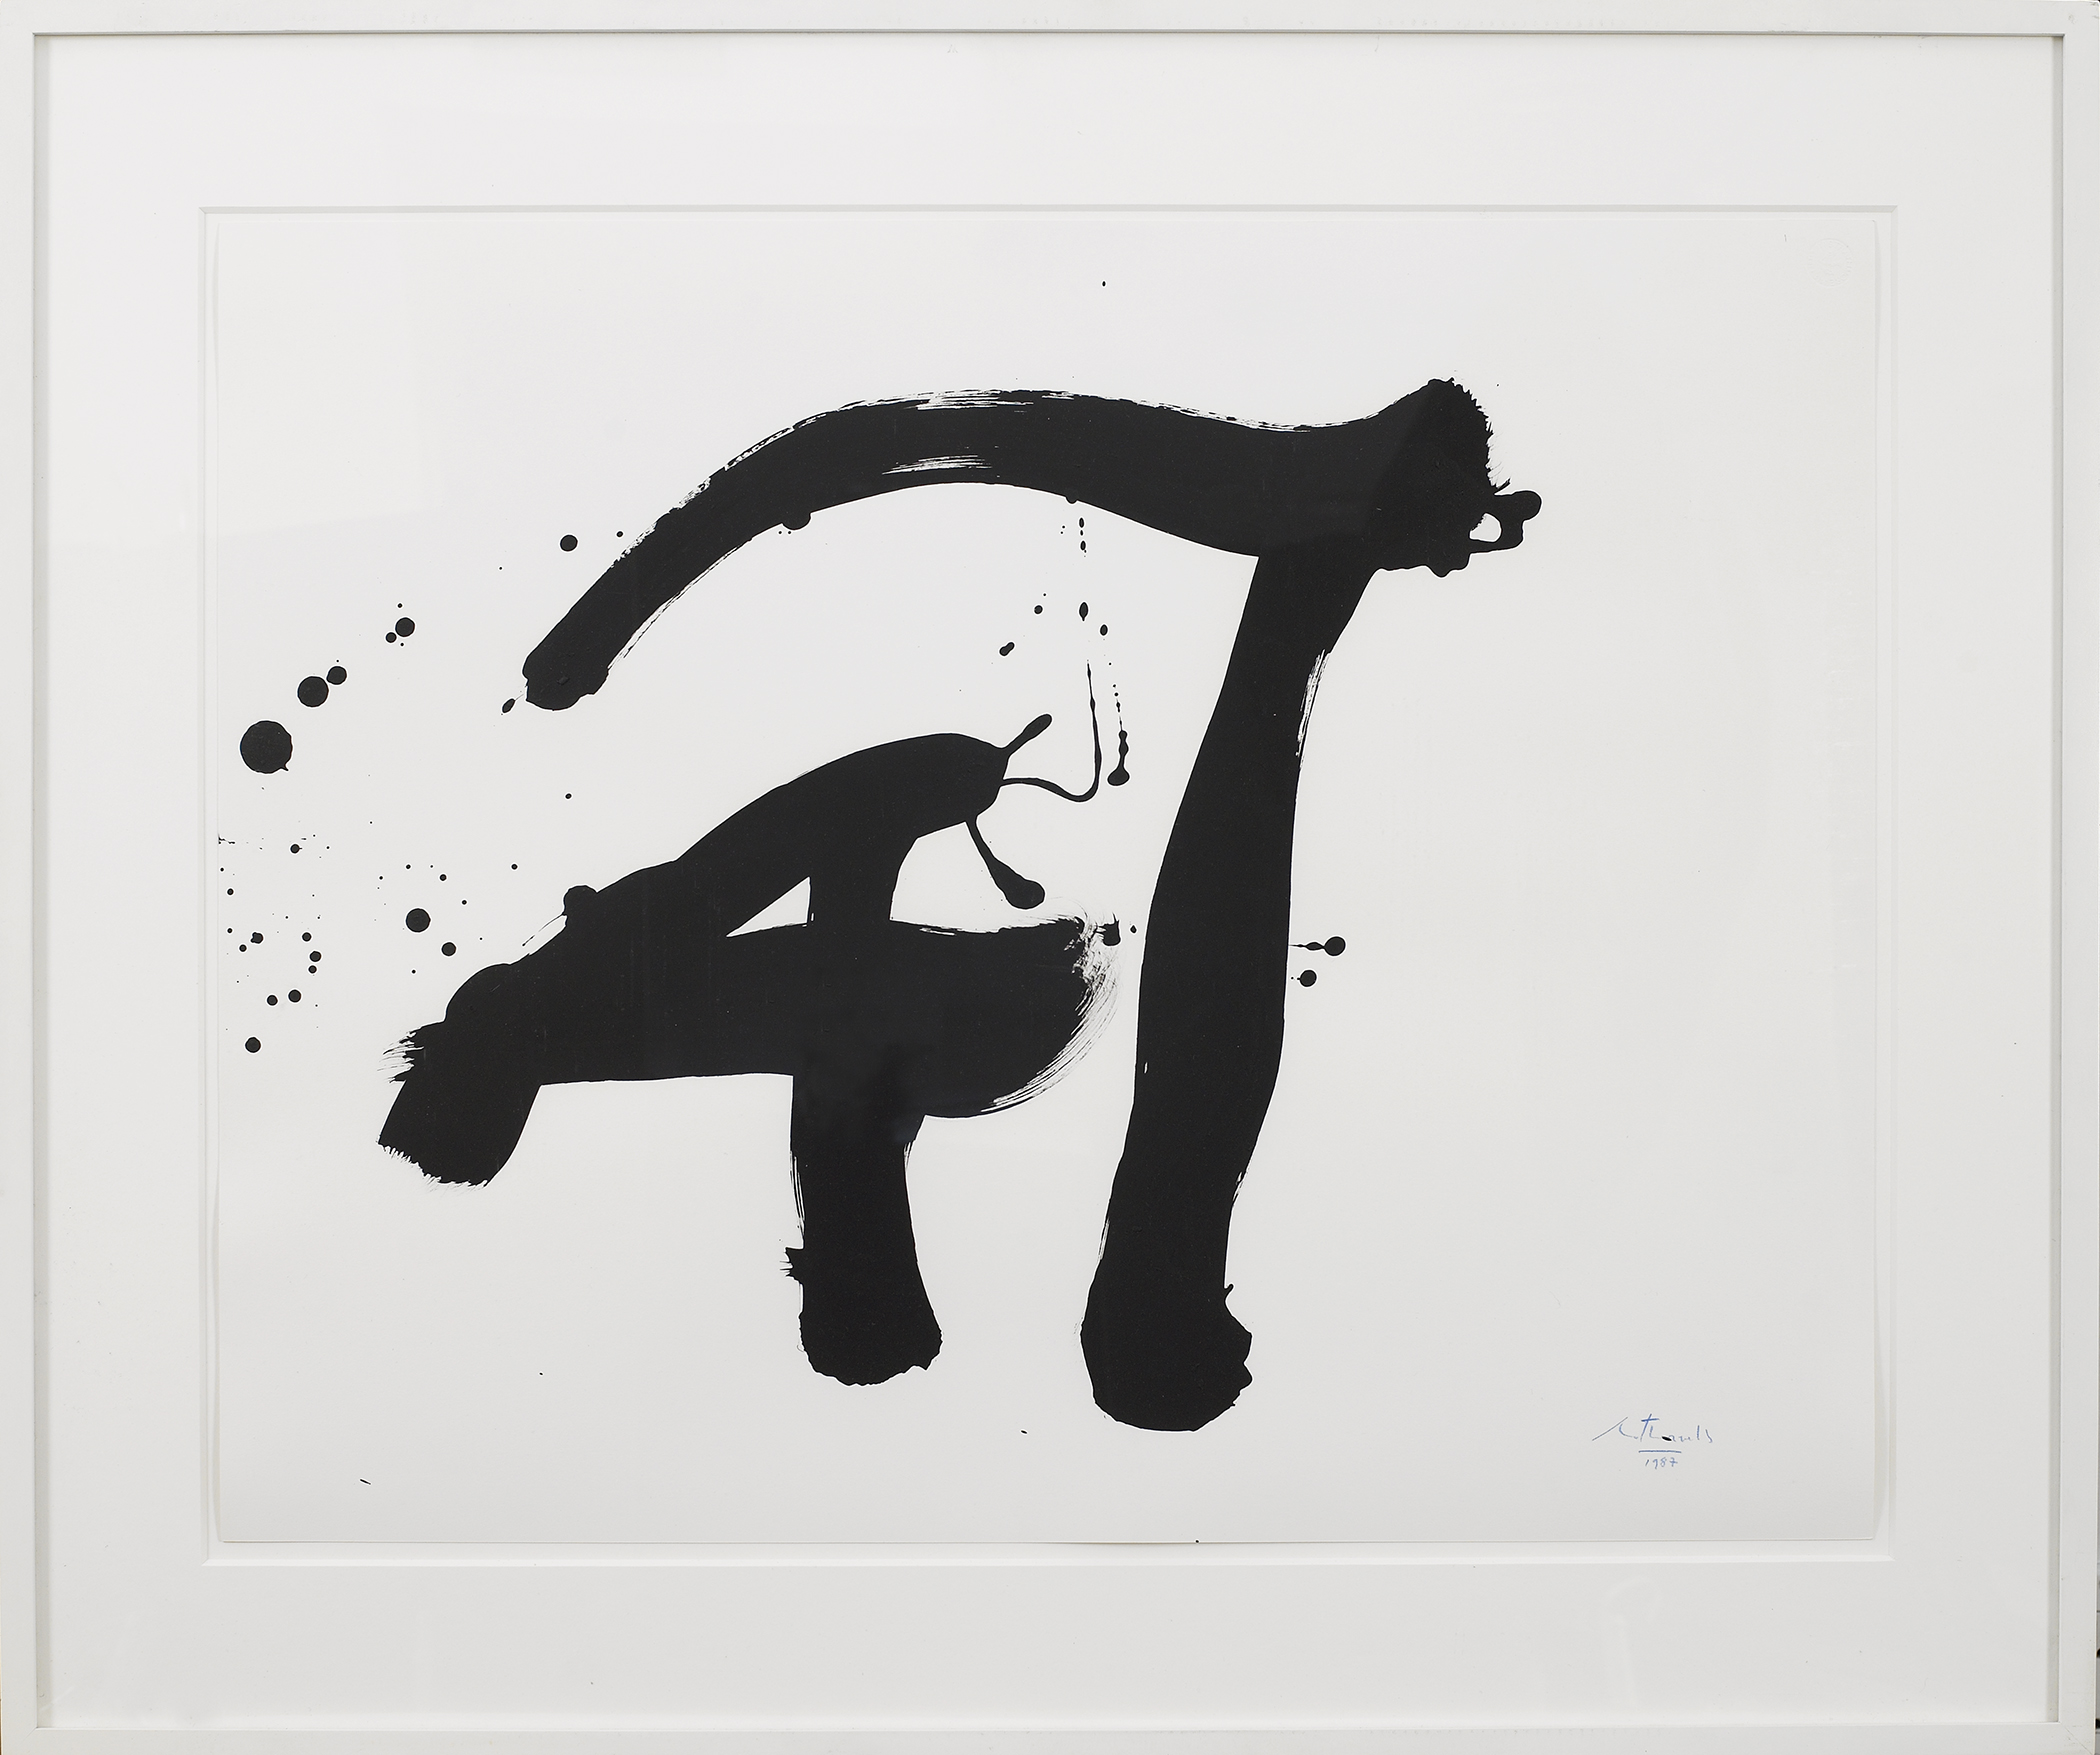 Untitled, 1987  , synthetic polymer paint on Strathmore paper, 23 x 29 inches, signed and dated 1987 at the lower right, signed, dated and inscribed with inv. #D87-3492 verso